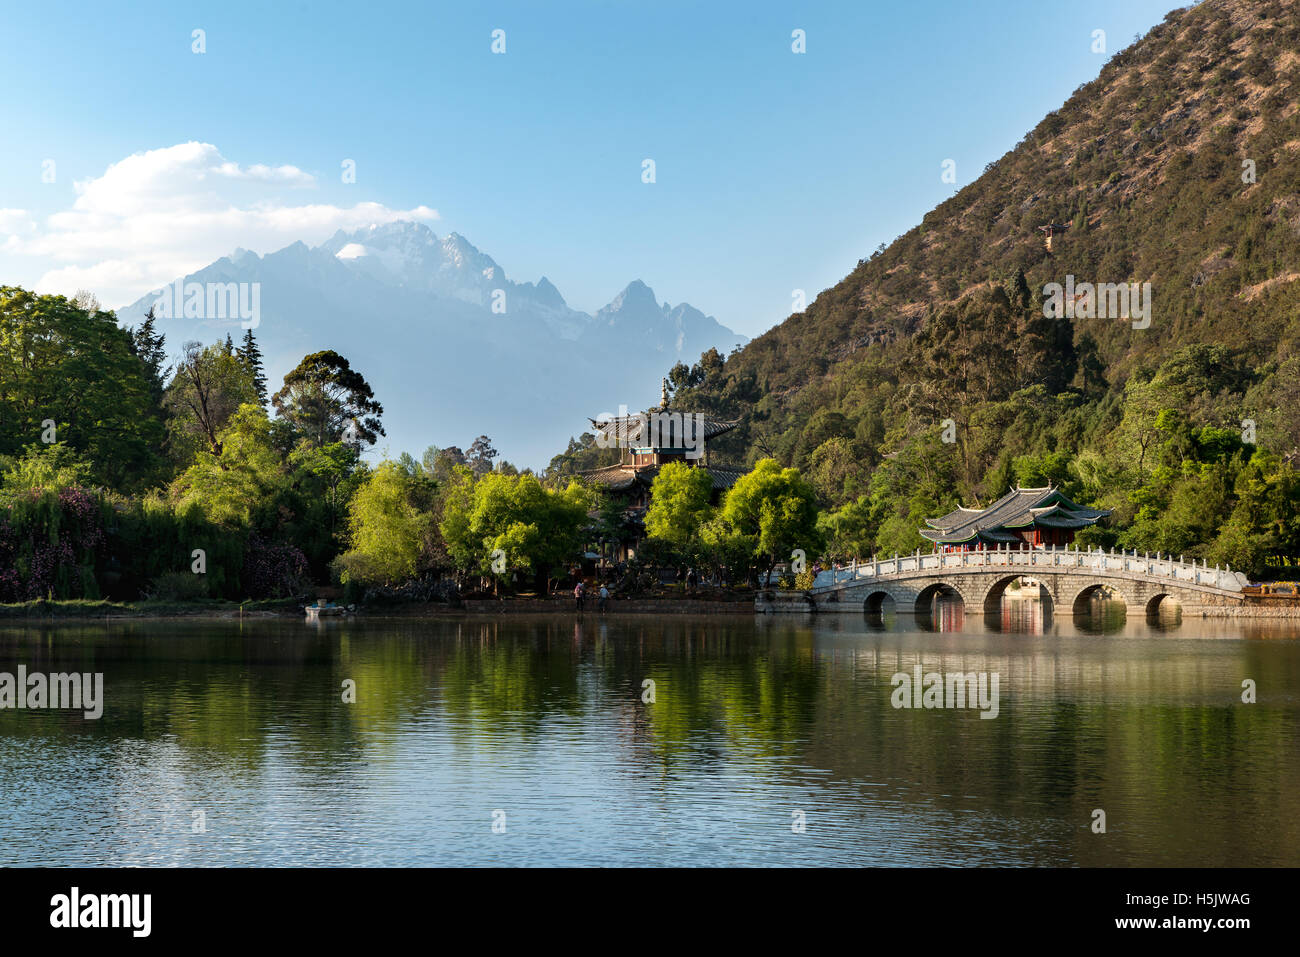 Lijiang old town scene at Black Dragon Pool Park with Jade dragon mountain in background, Lijiang, China - Stock Image